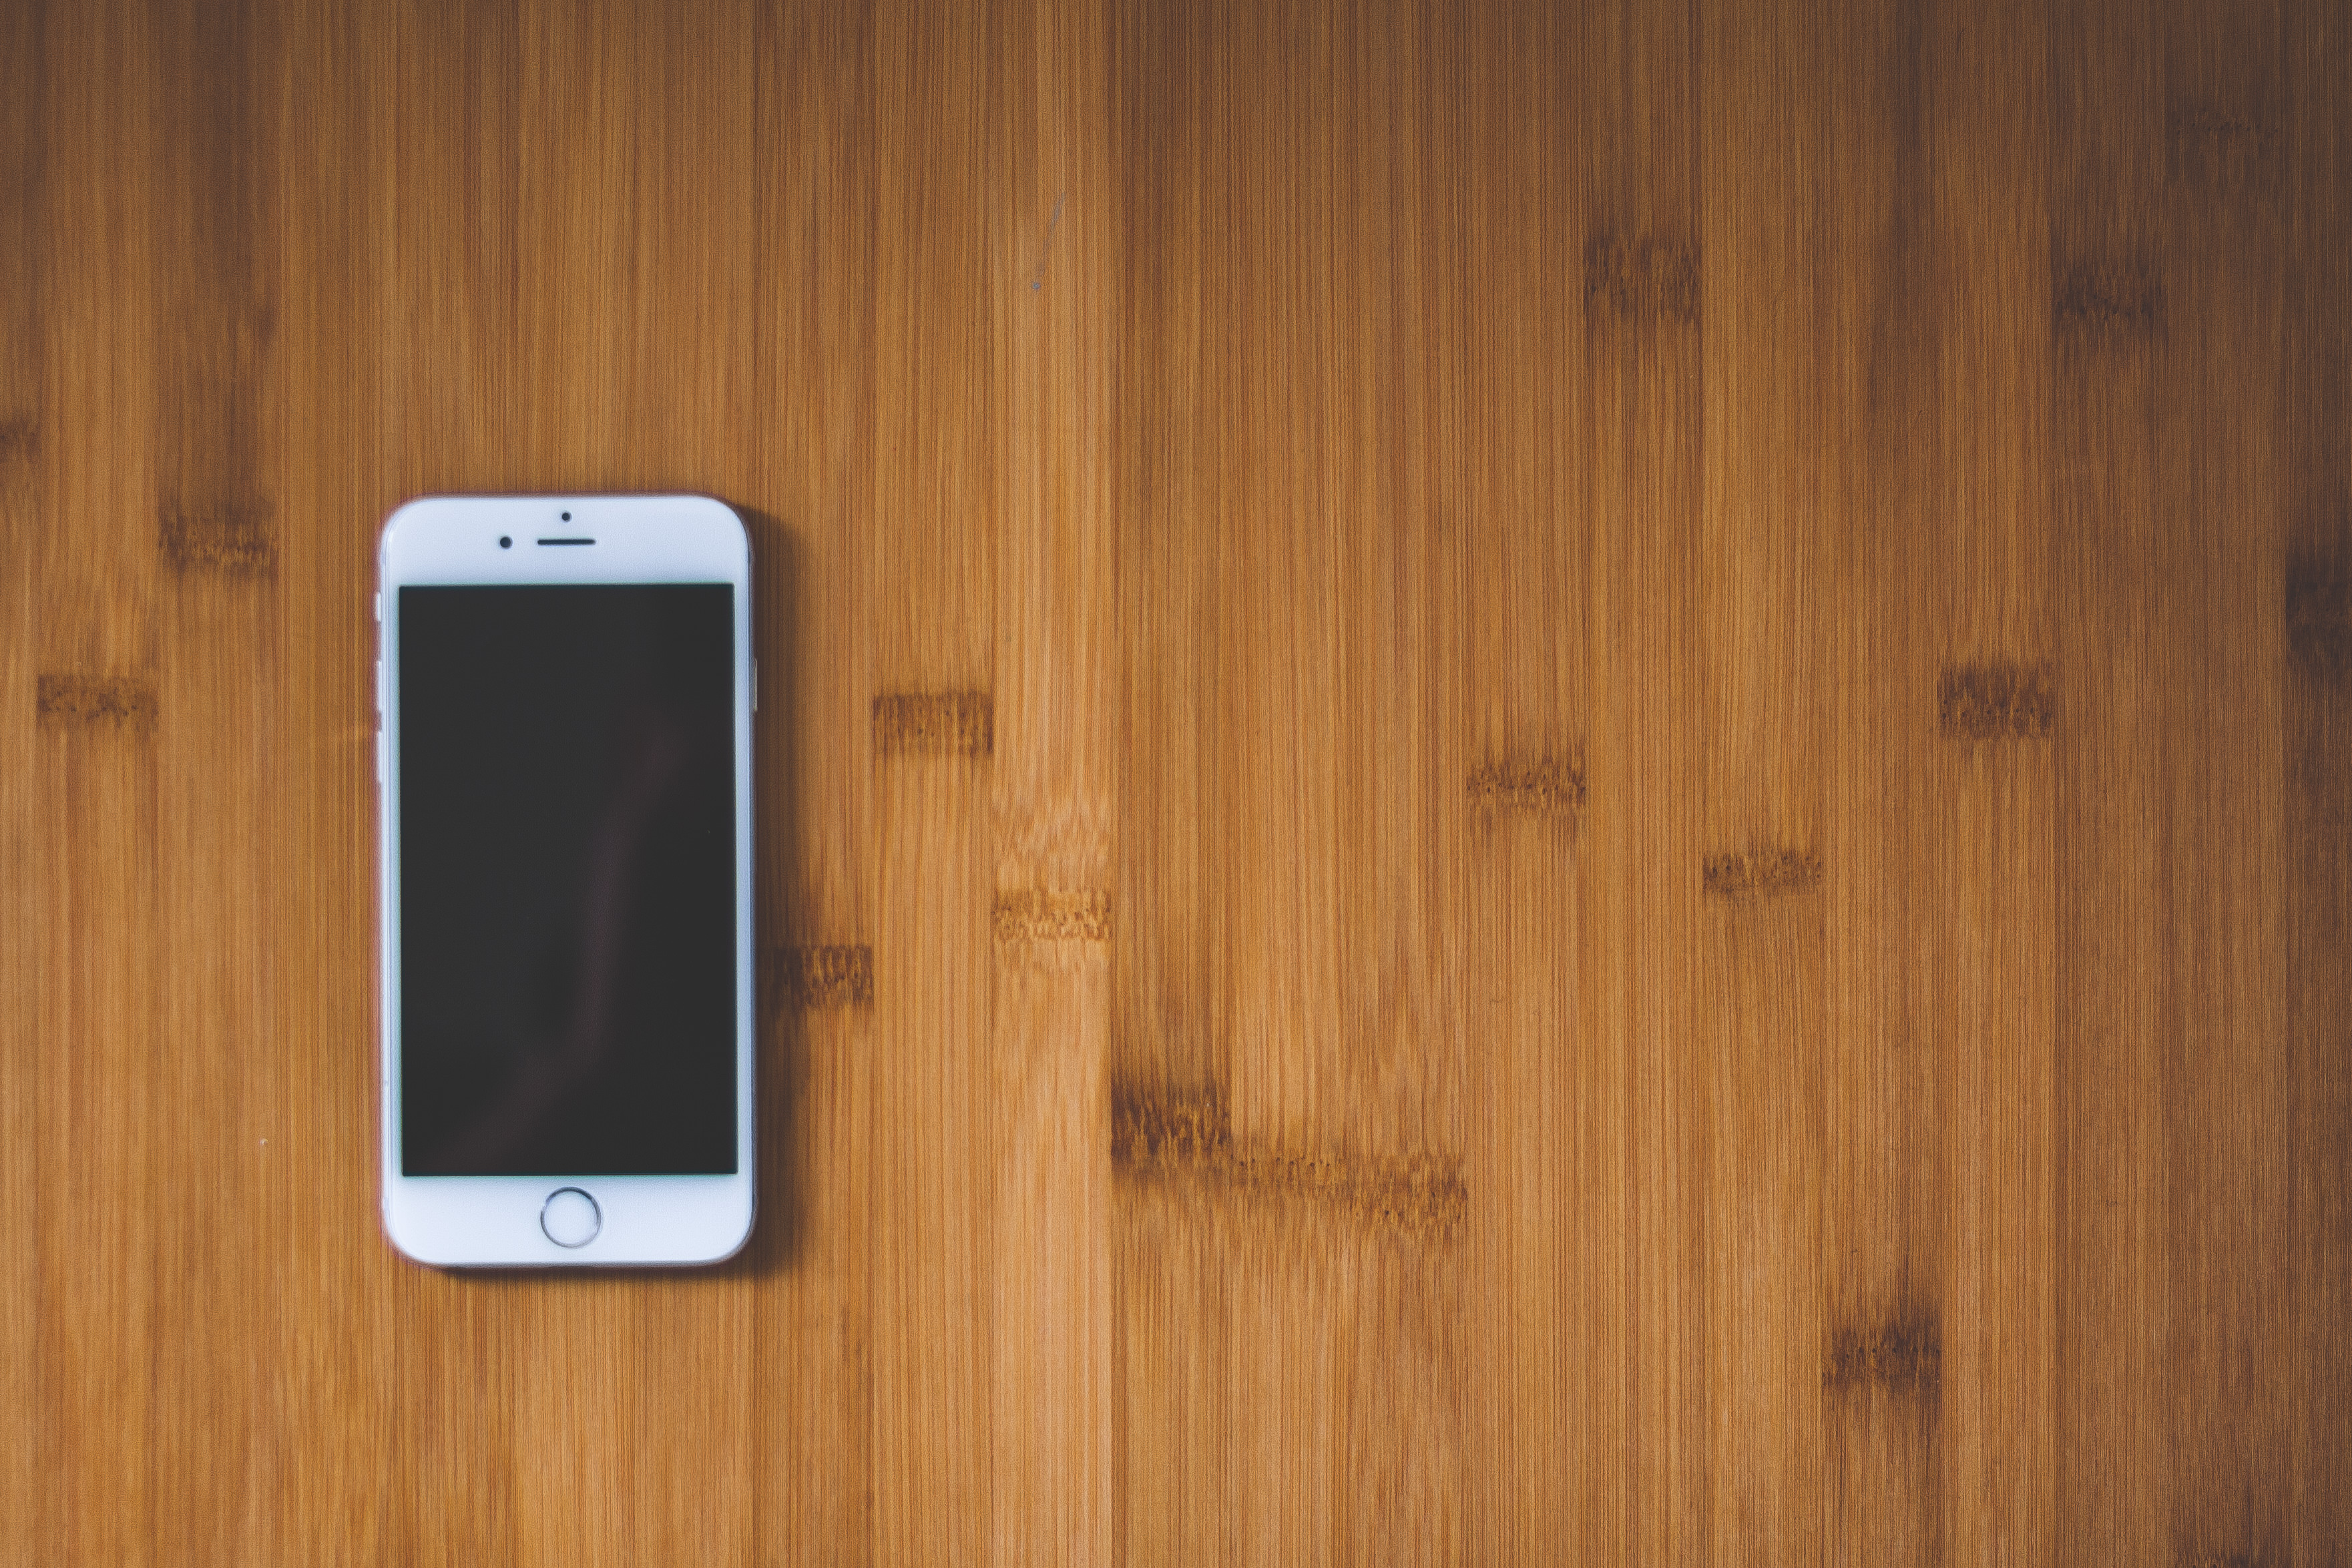 Silver Iphone 6 On Brown Wooden Surface Free Stock Photo